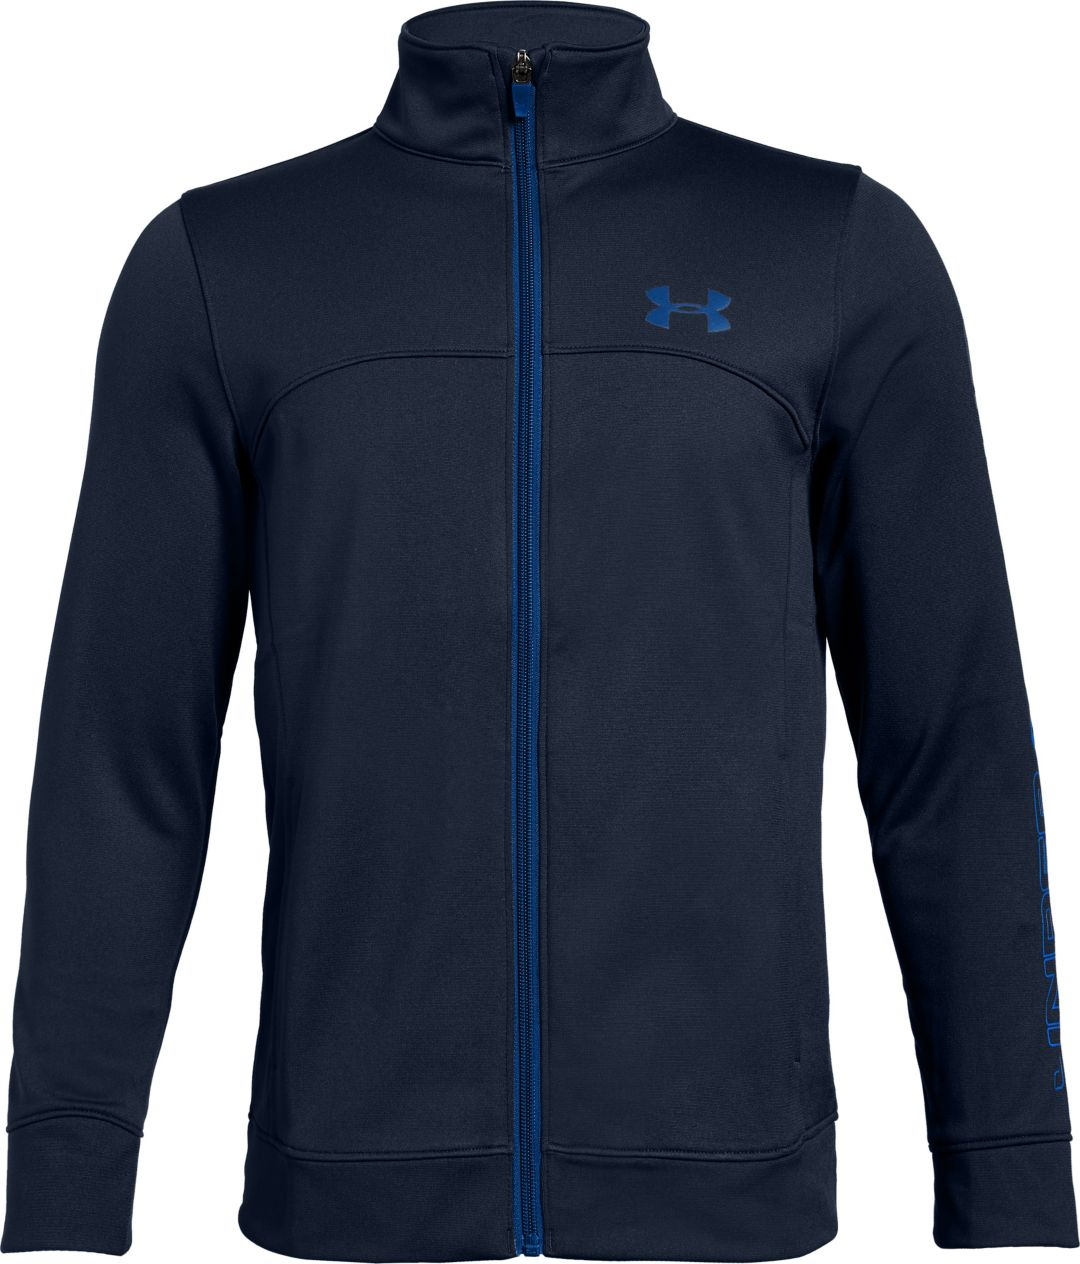 a9533199d3695 Under Armour Boys' Pennant Warm-Up Jacket | DICK'S Sporting Goods